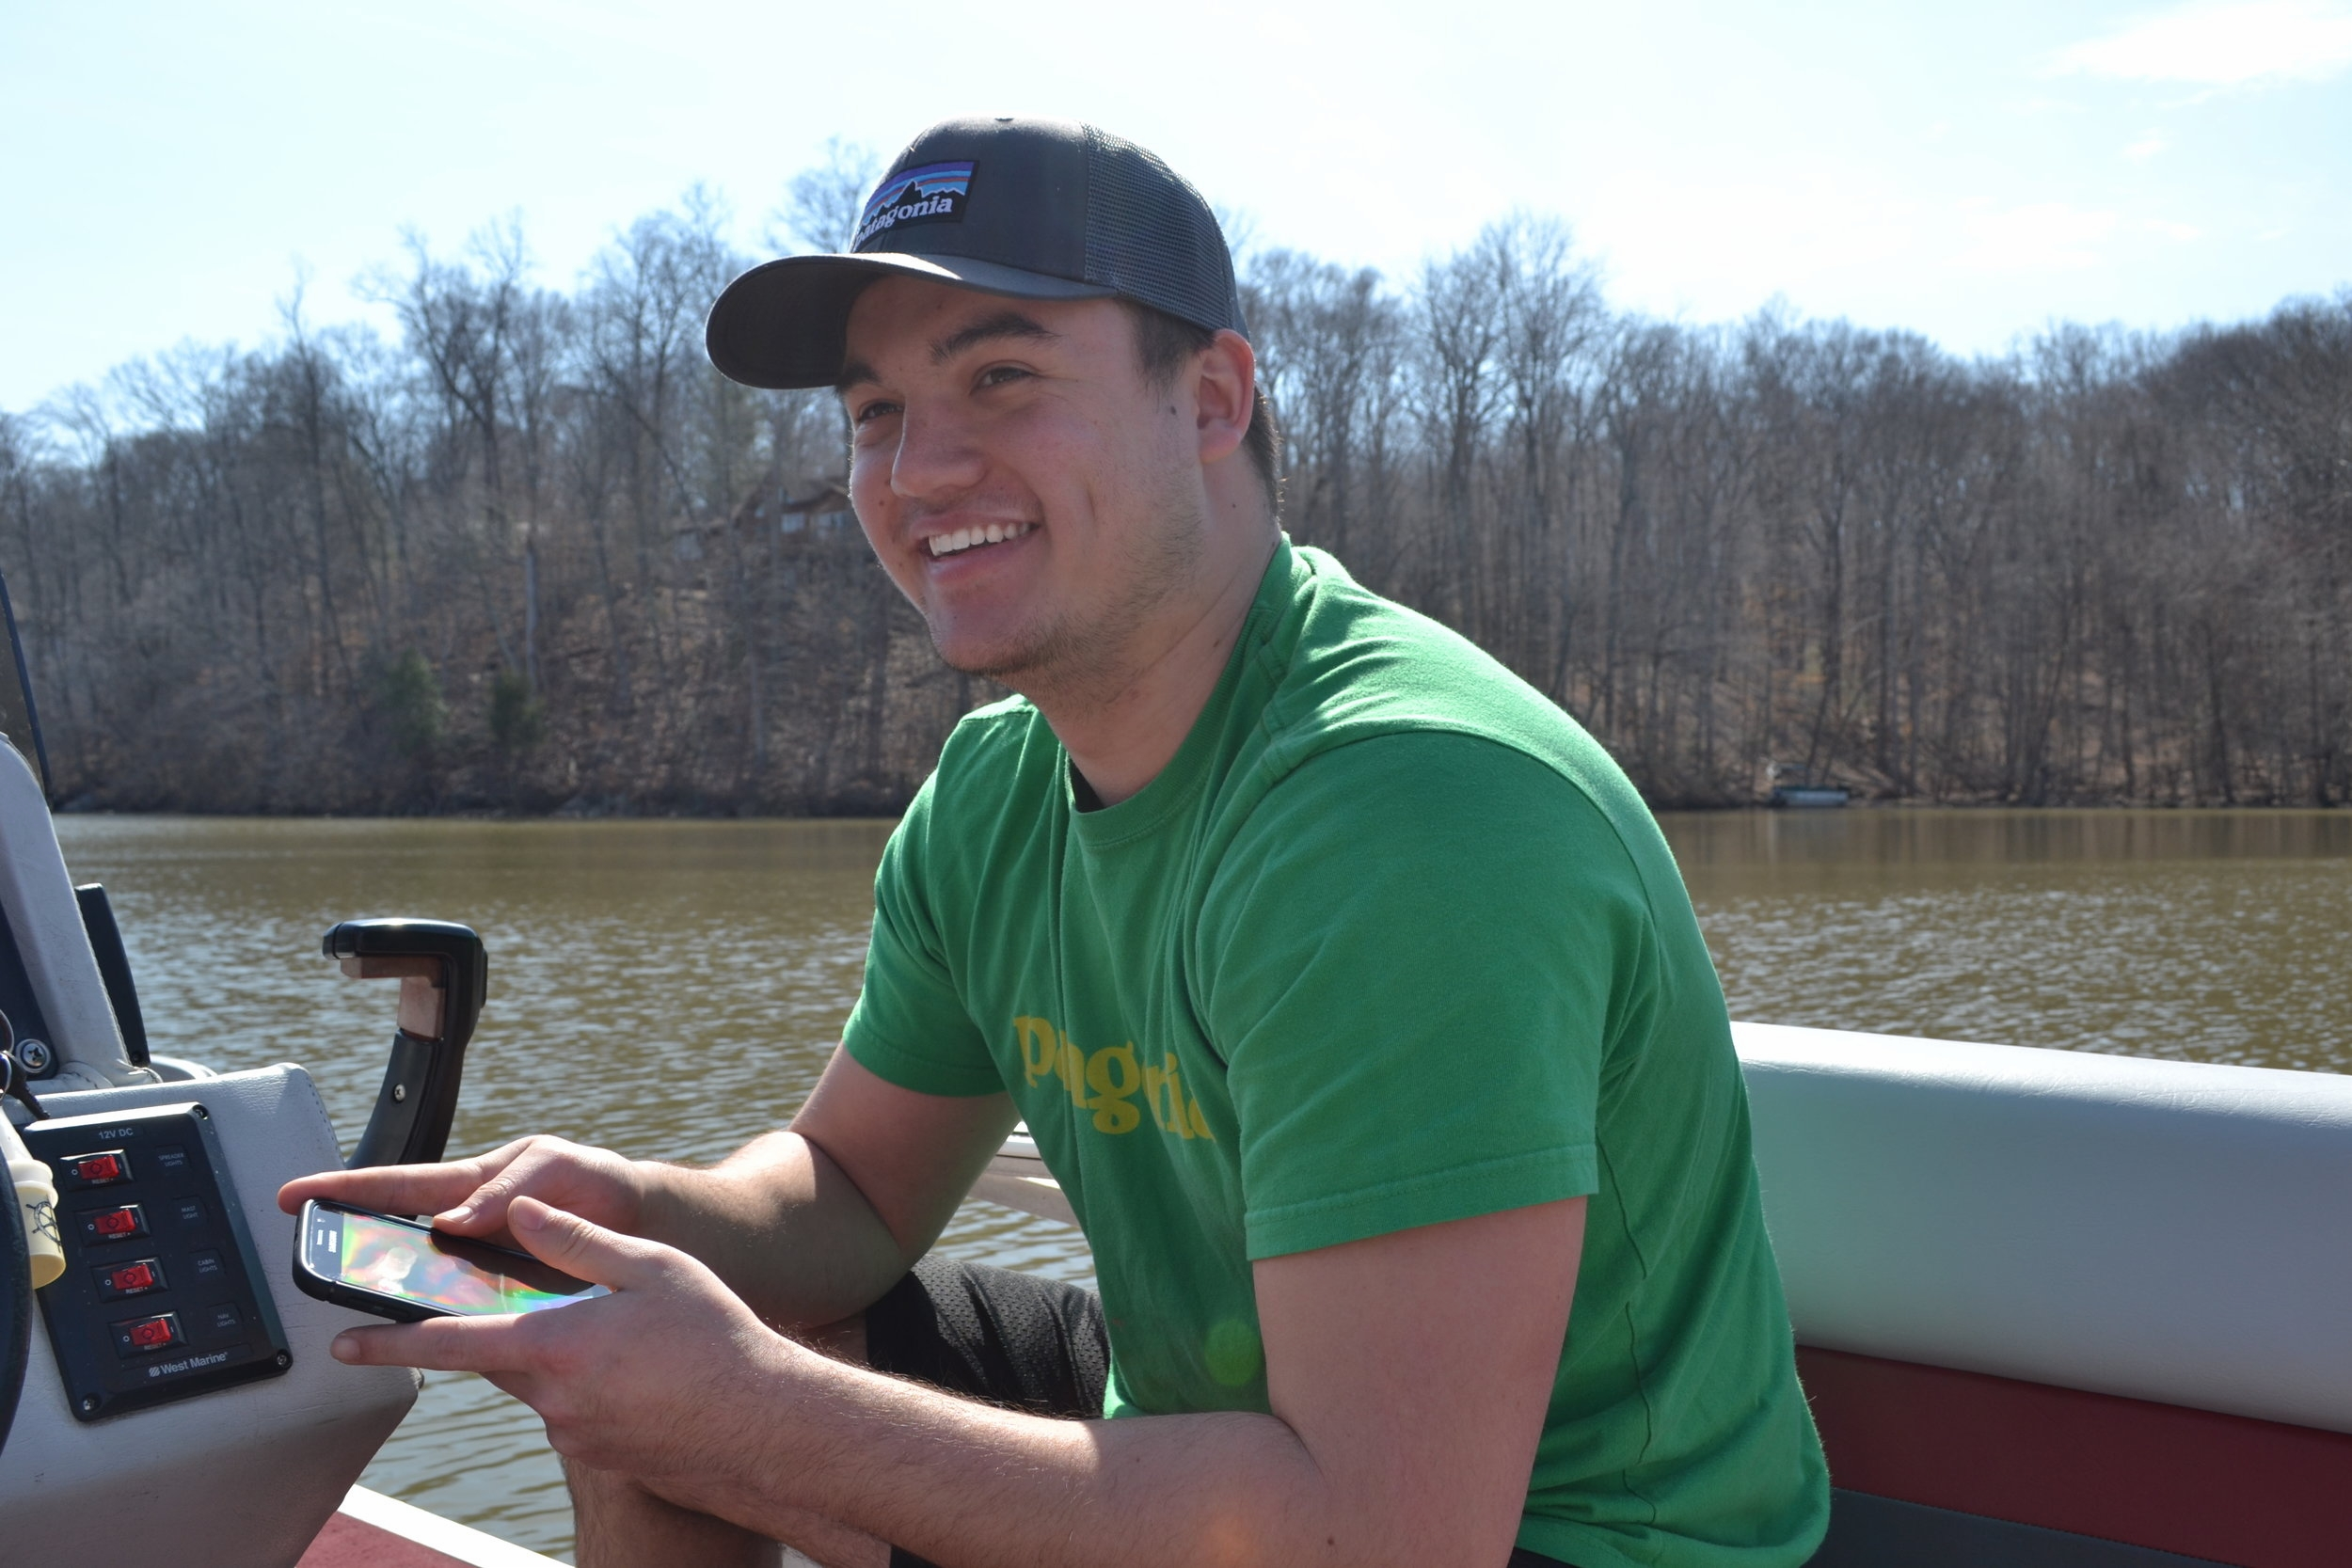 Rob Ulrich on a pontoon boat in Kettle Run, Virginia in March 2016.